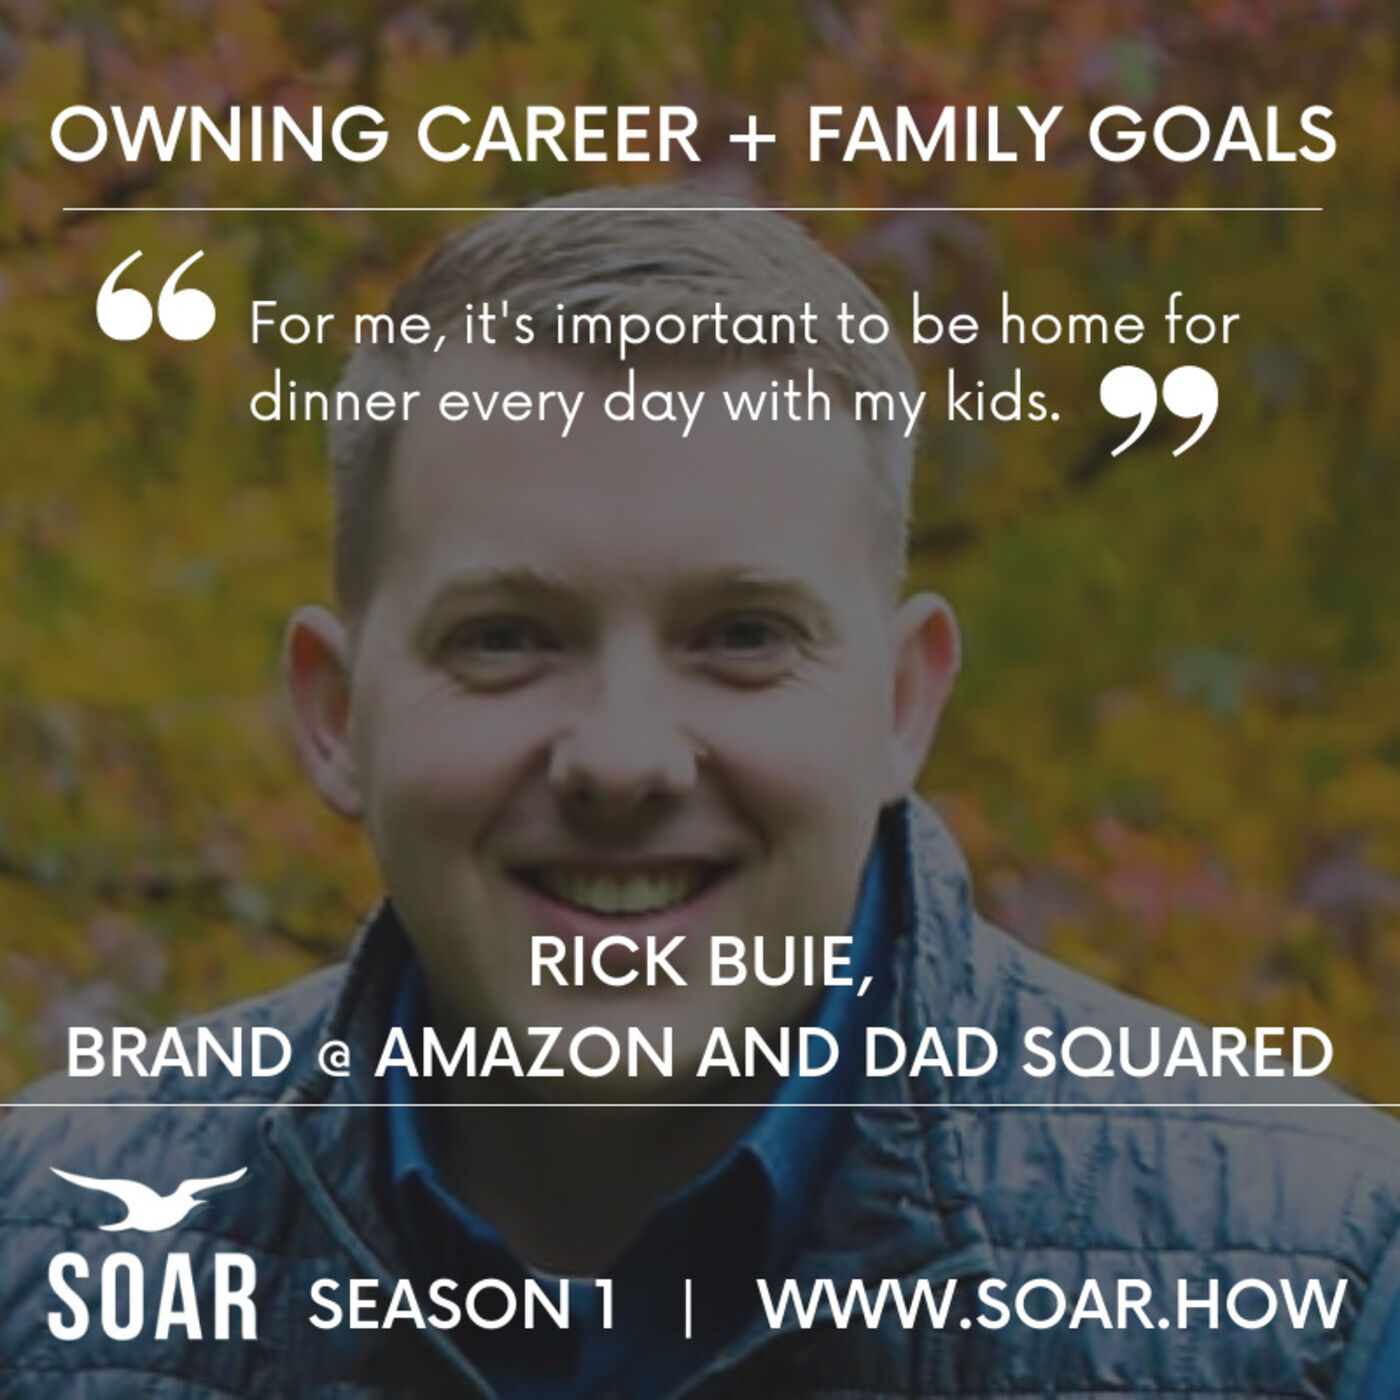 Owning Career + Family Goals with Rick Buie